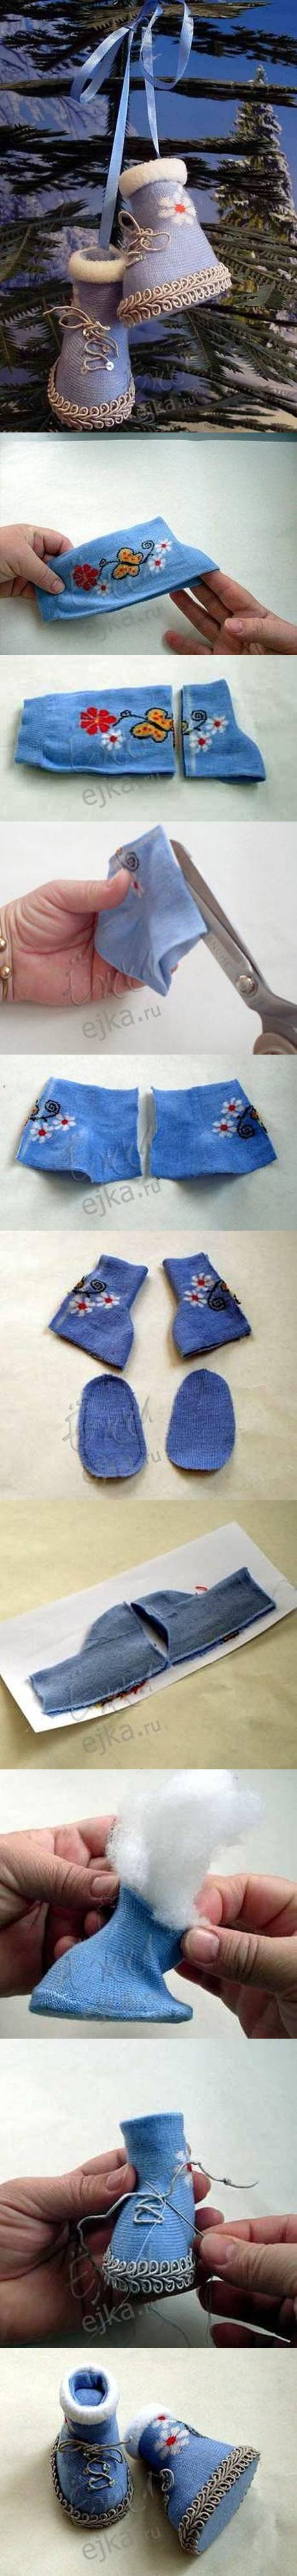 diy-socks-baby-christmas-shoes Last-Minute DIY Christmas Gift Tutorials Everyone will Love